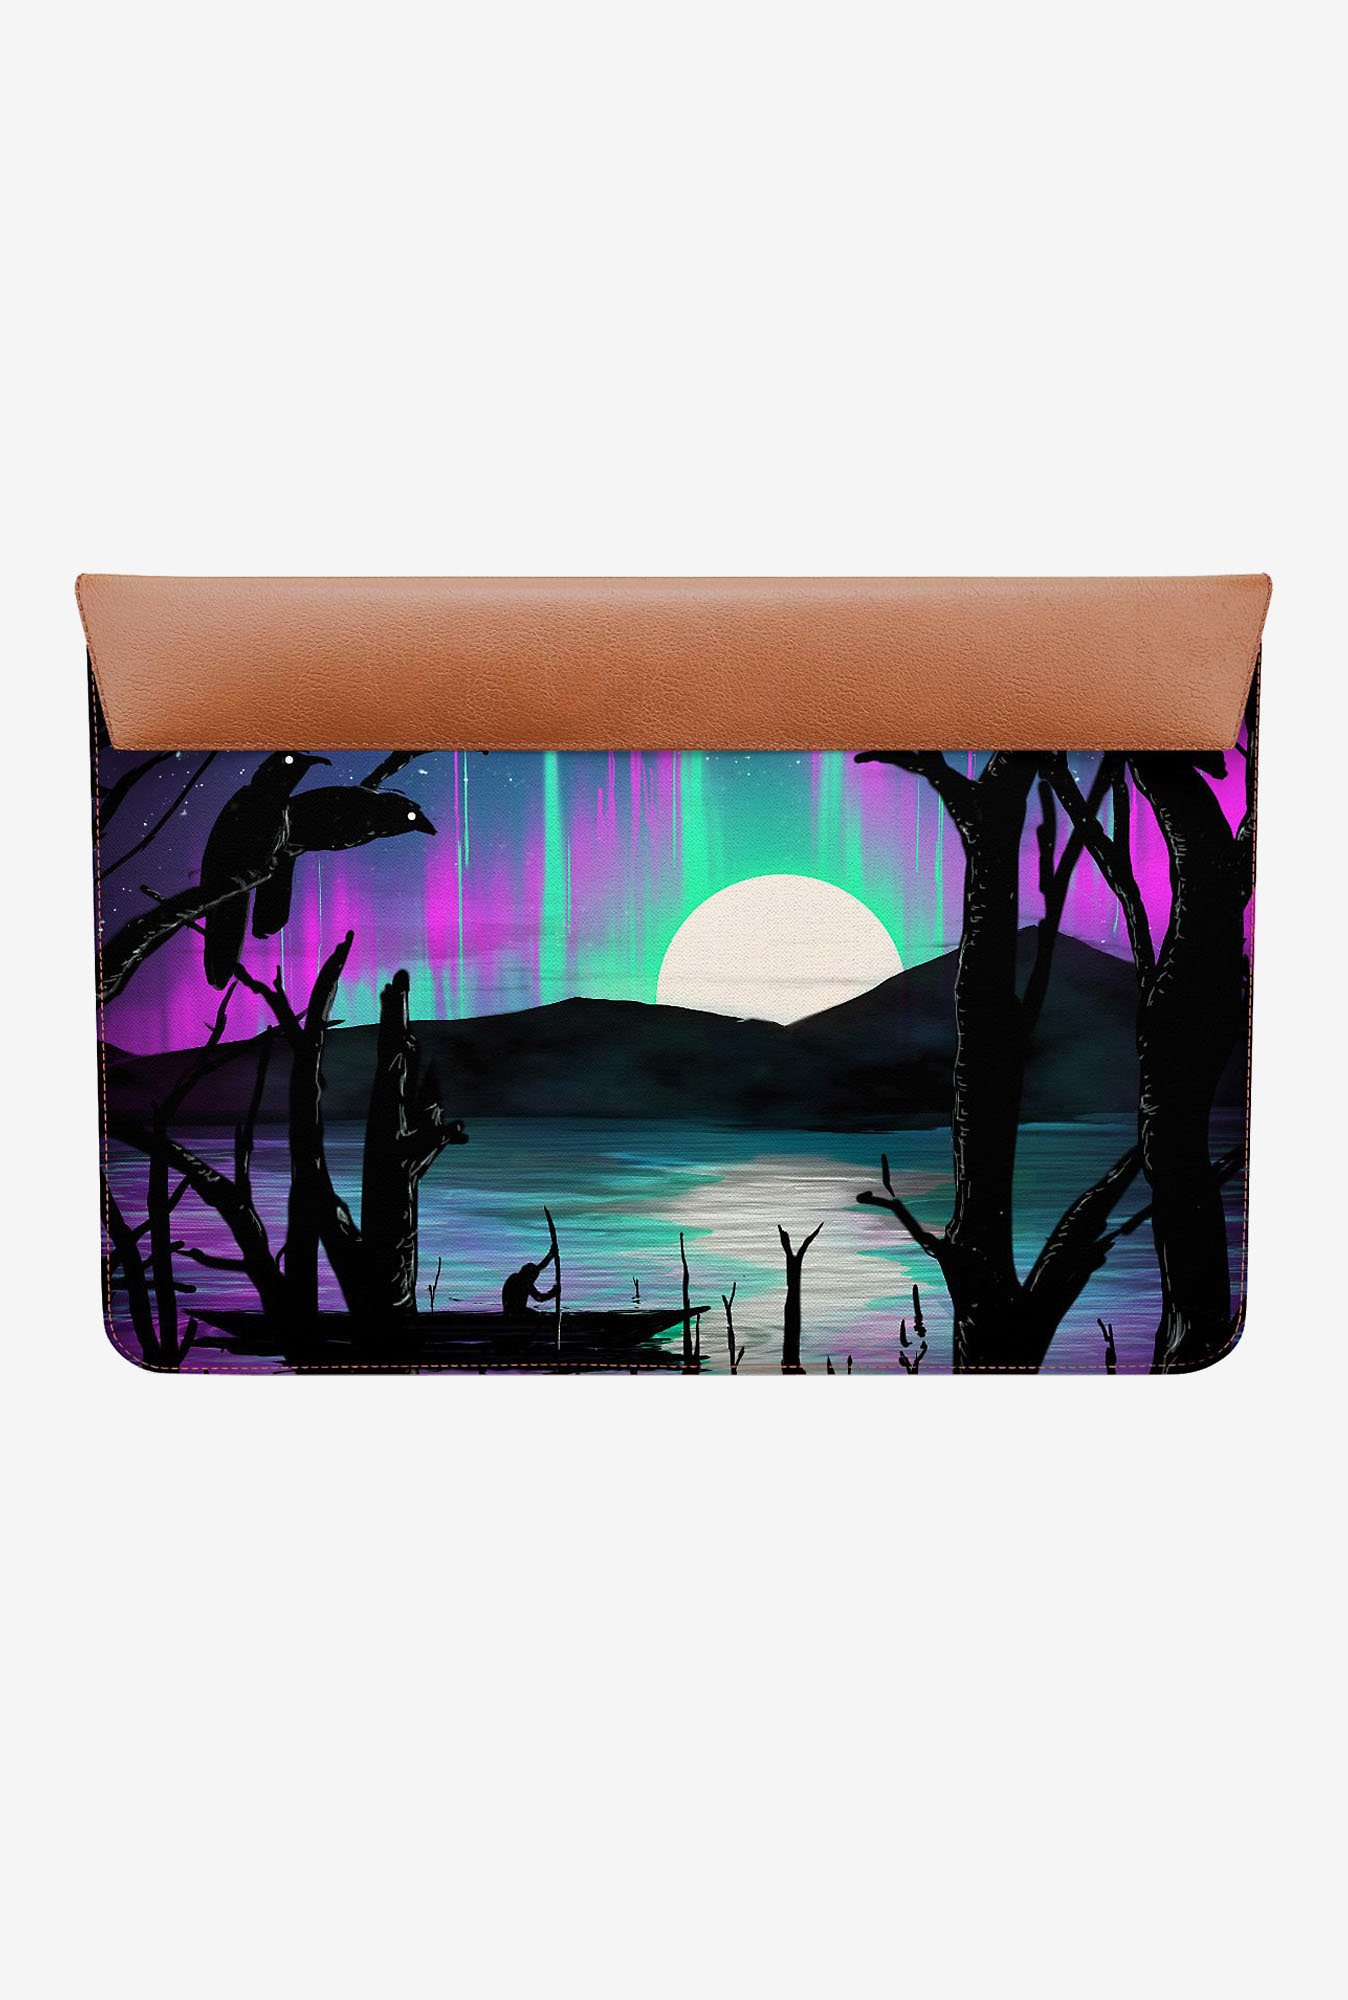 DailyObjects Night Aurora MacBook 12 Envelope Sleeve